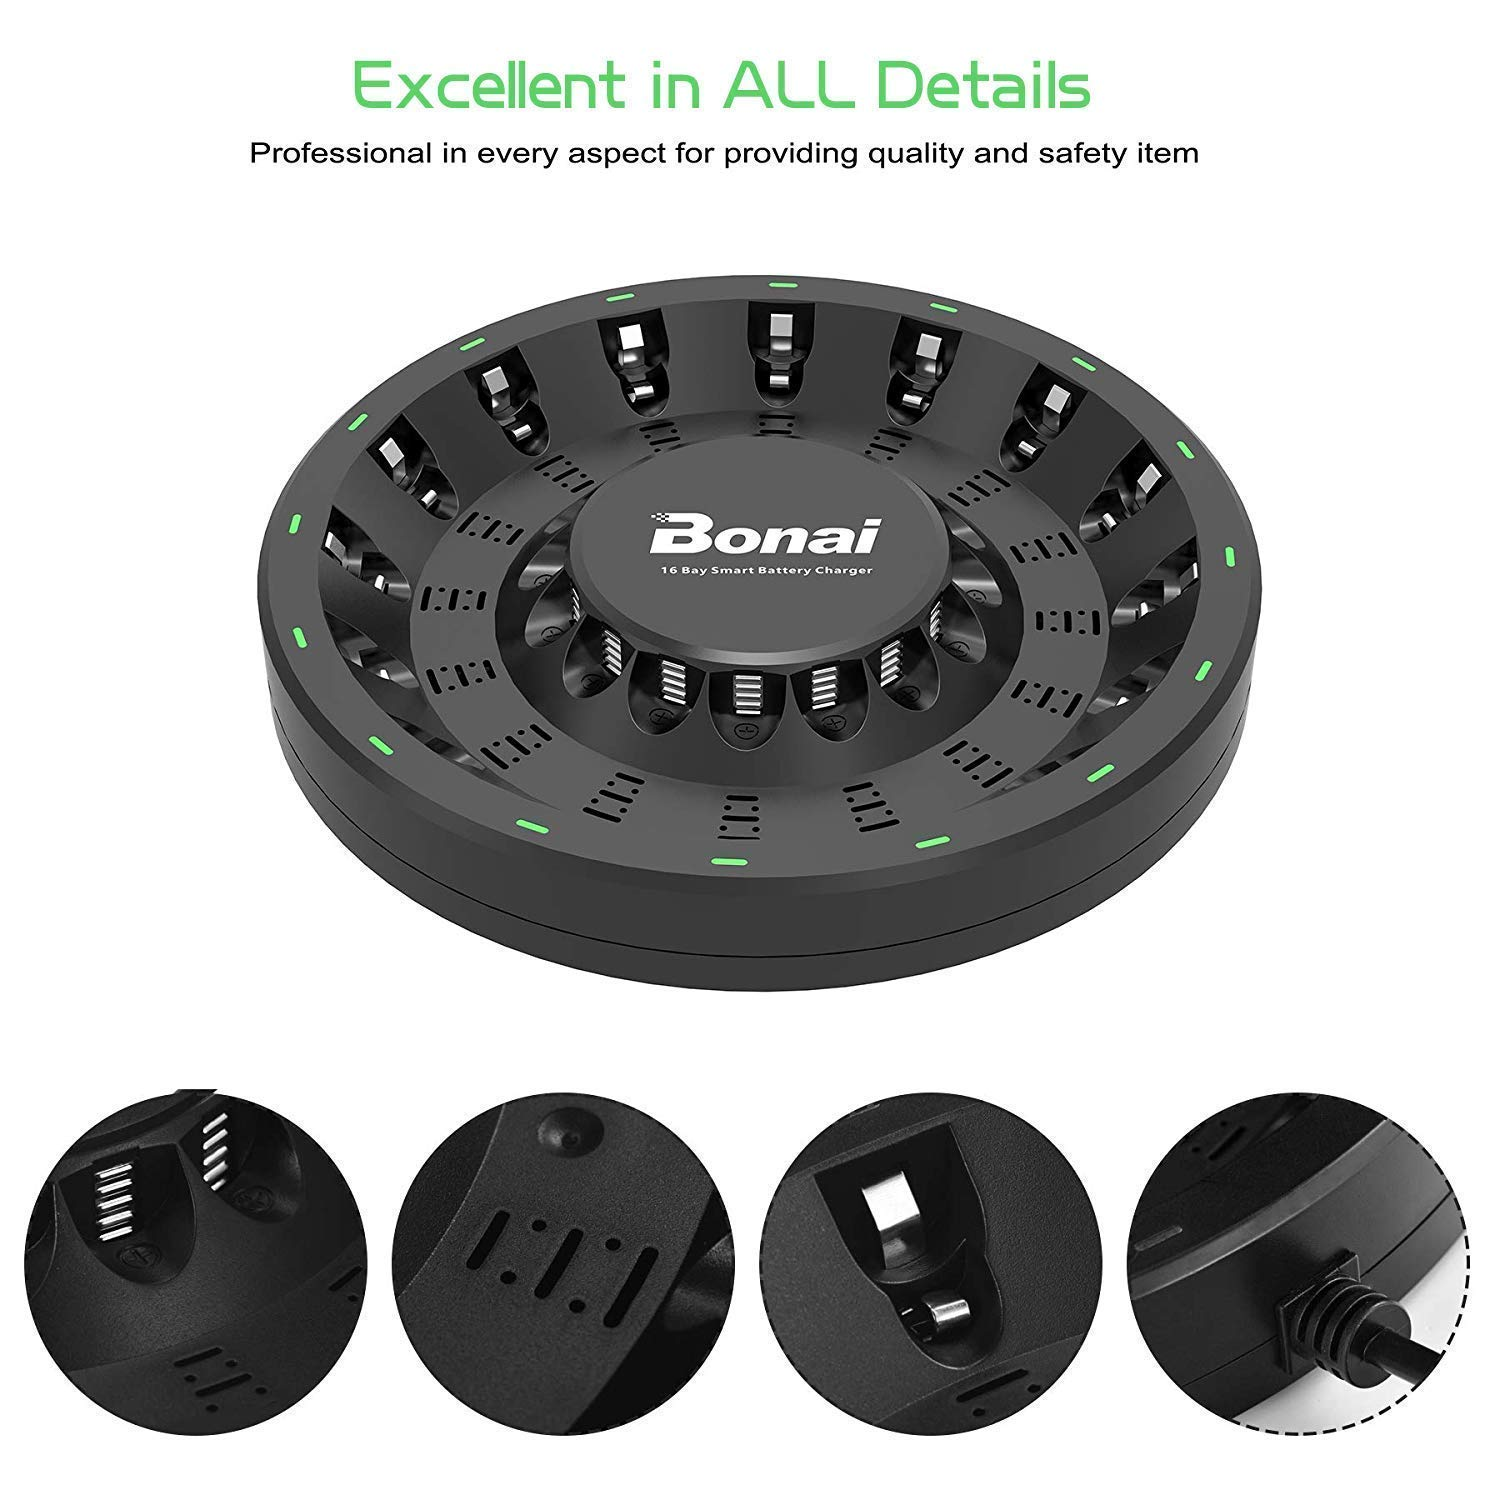 BONAI 16 Bay Smart Battery Charger Round with 16 Pack AA High-Capacity 2800mAh Ni-MH Rechargeable Batteries by BONAI (Image #3)